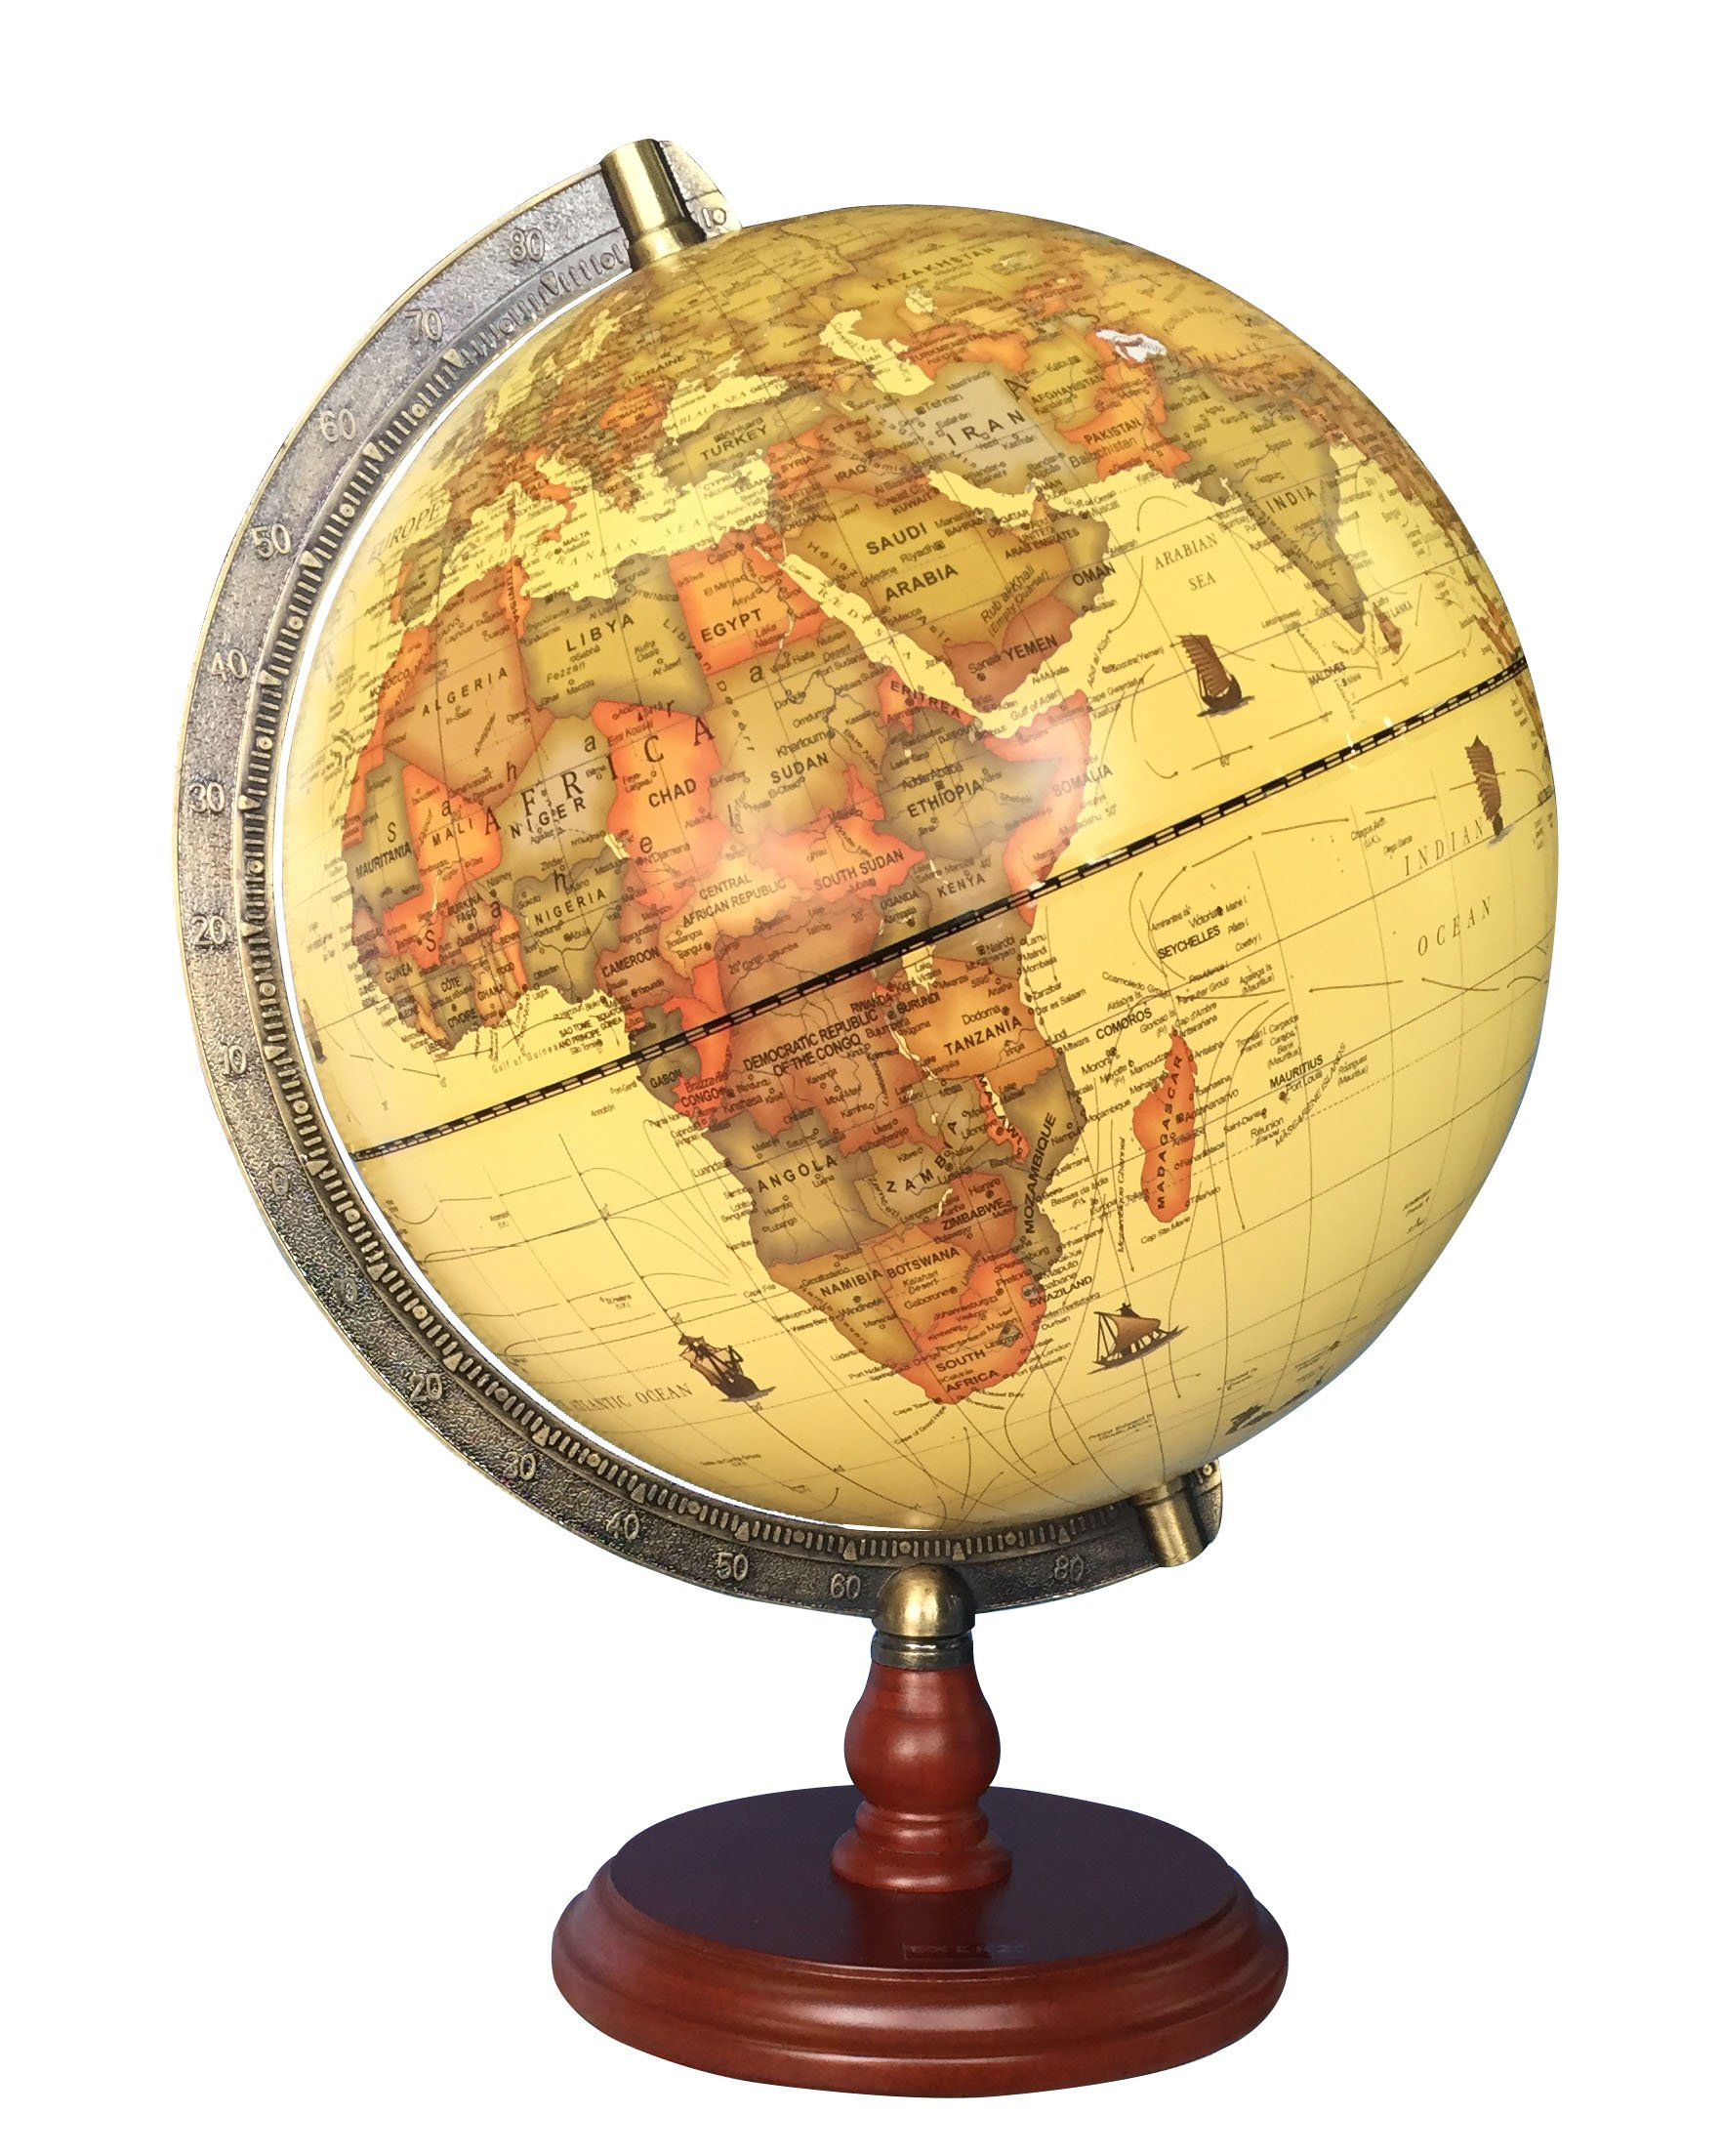 Antique globe with a wood base political desktop world globe large antique globe with a wood base political desktop world globe large dia 10 gumiabroncs Image collections